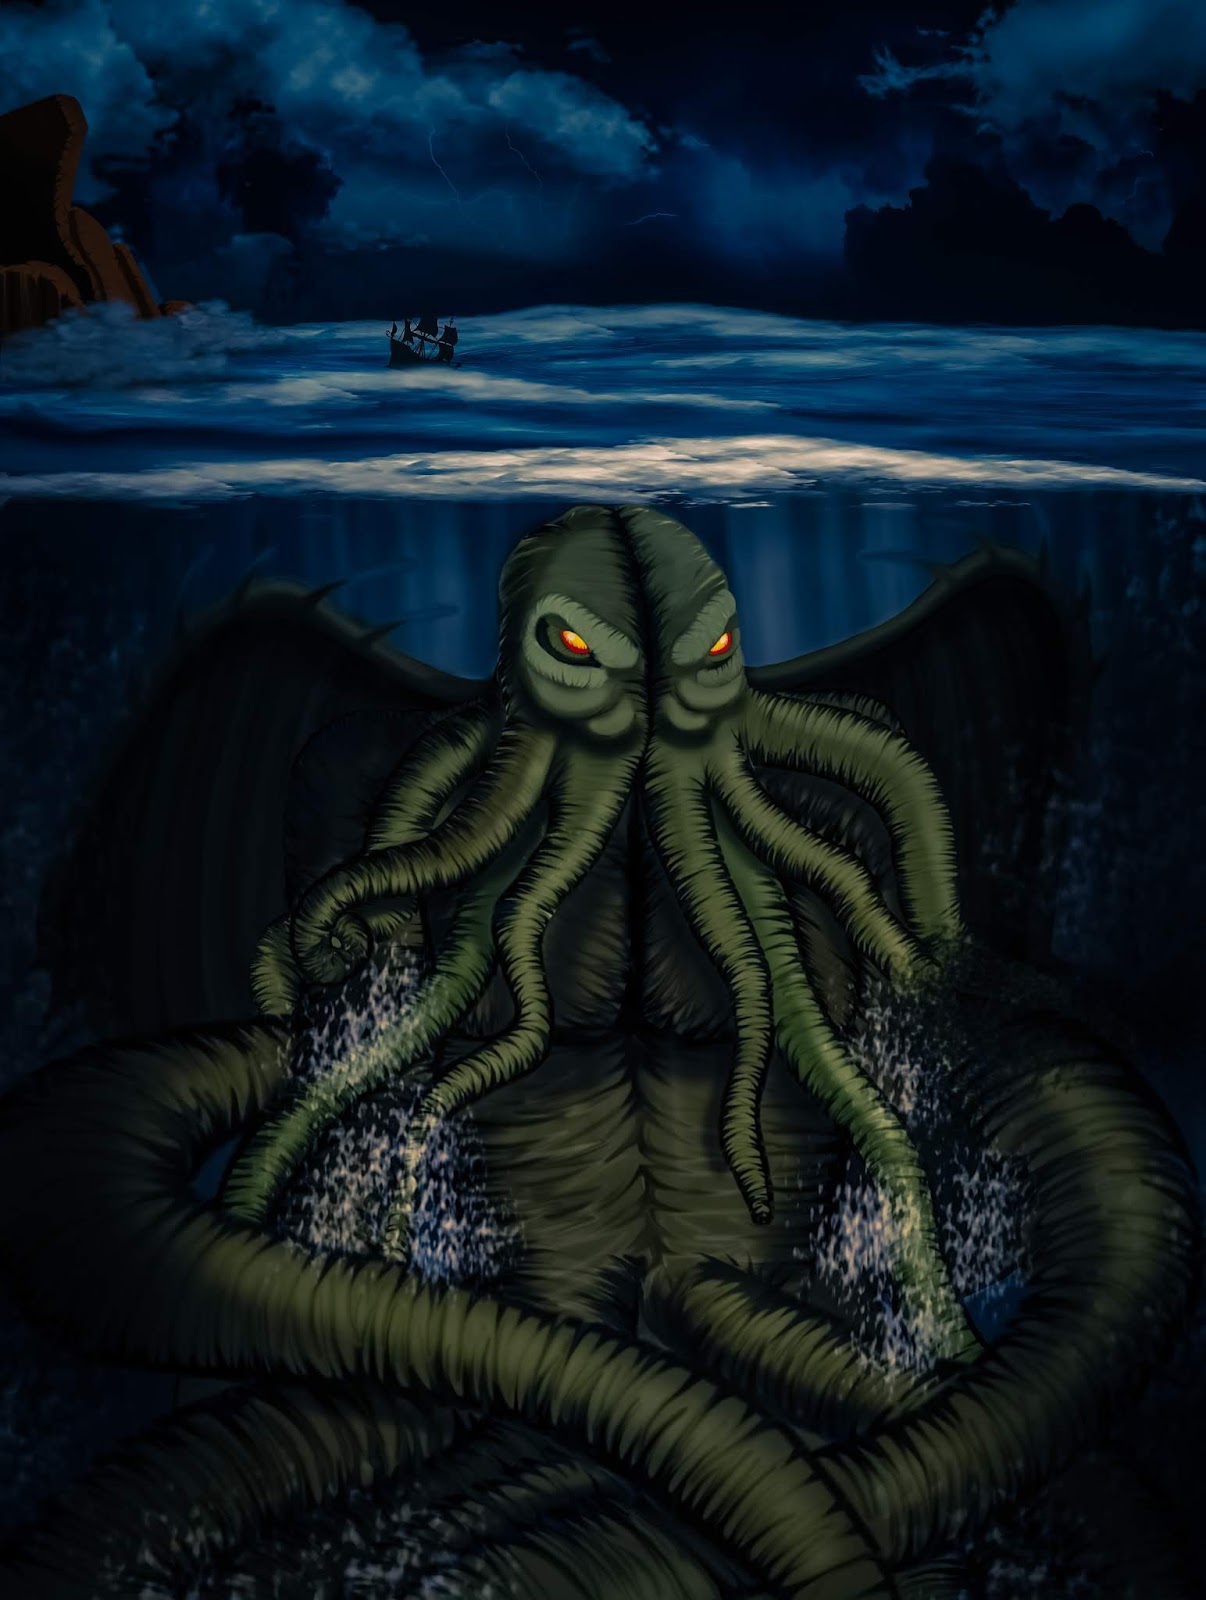 Cthulhu art drawing - Lovecraftian horror art by Konstantina Antoniadou